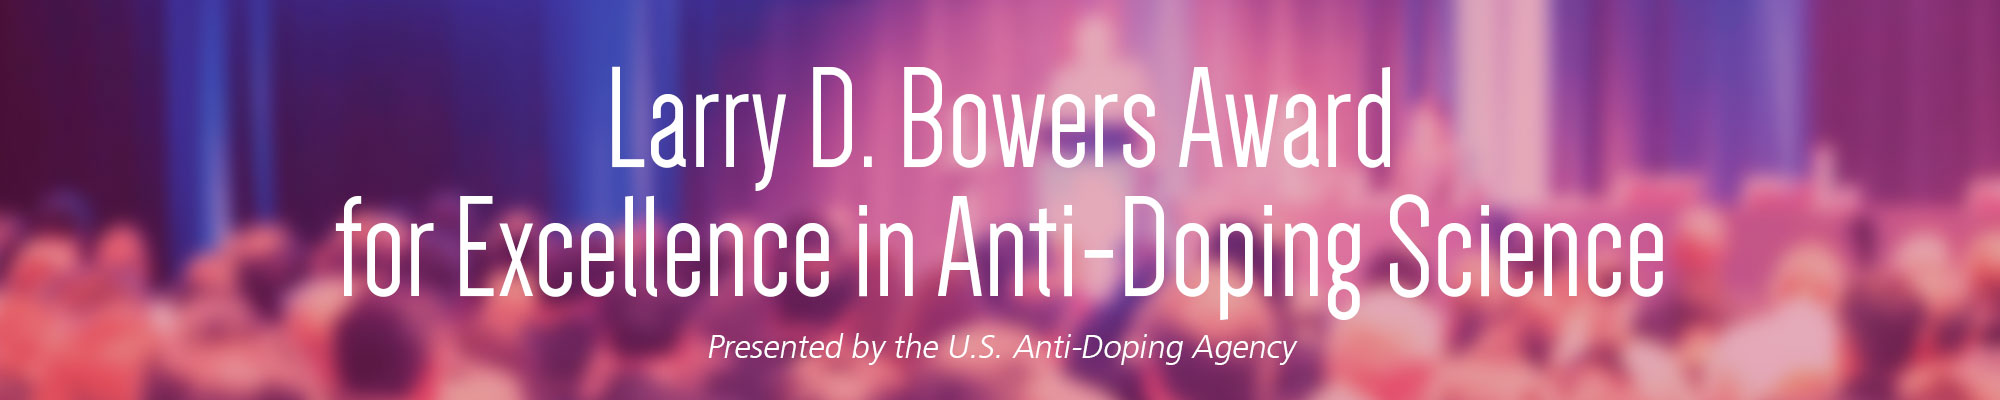 LD Bowers Award for Excellence in Anti-Doping Science header image